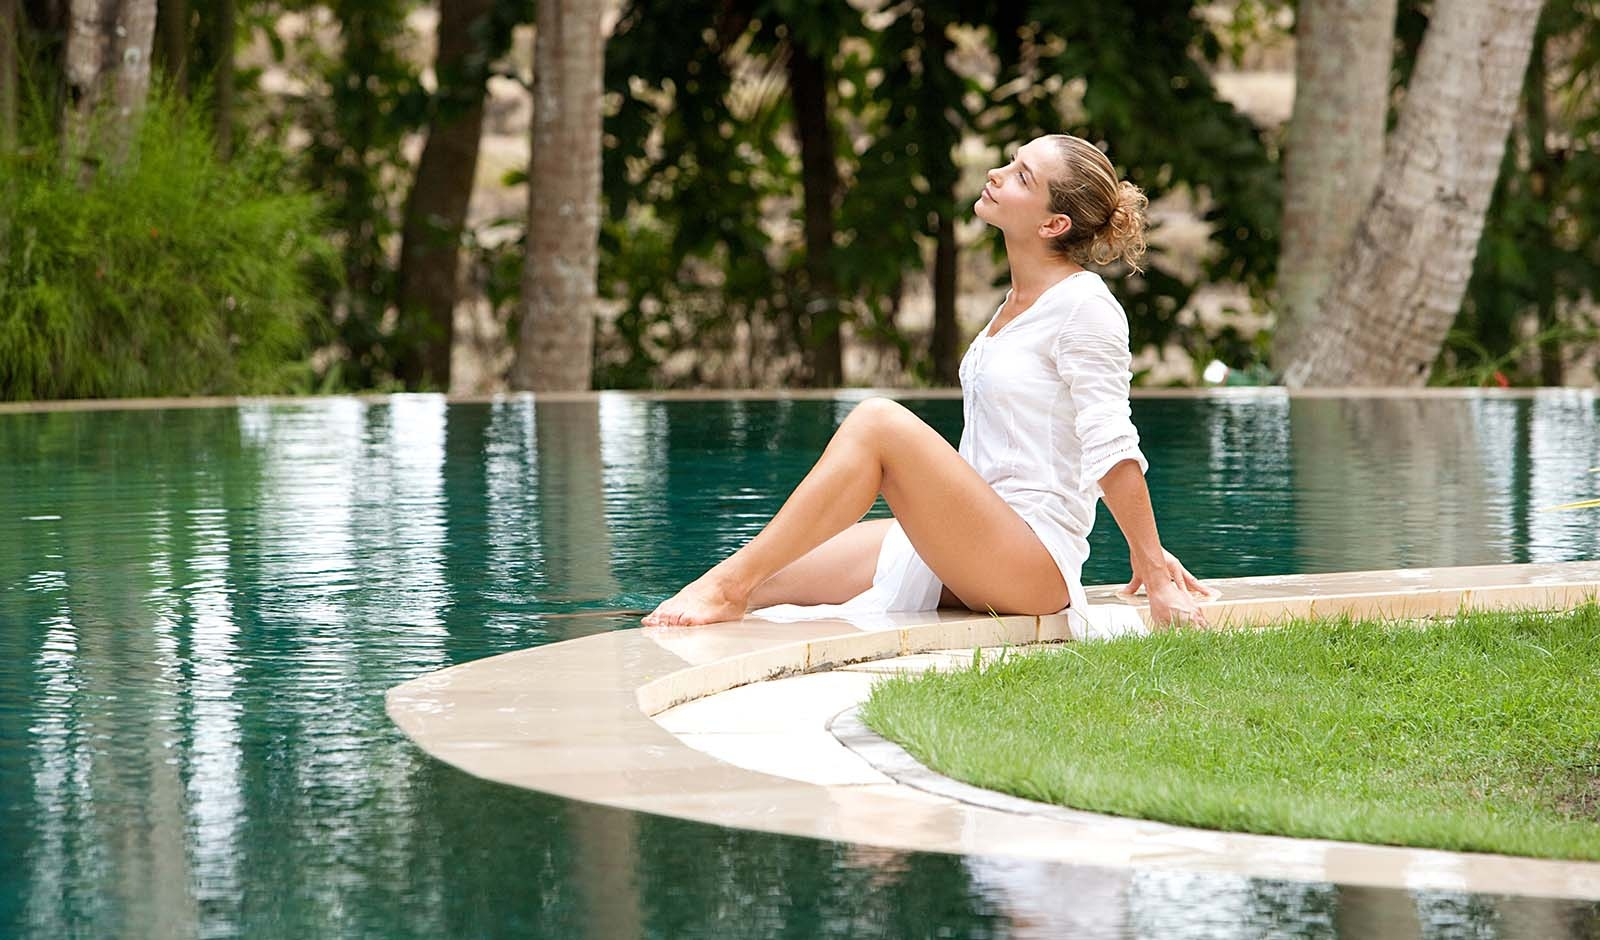 Swimming pool or natural lake? Why not both? Garden lakes in your home